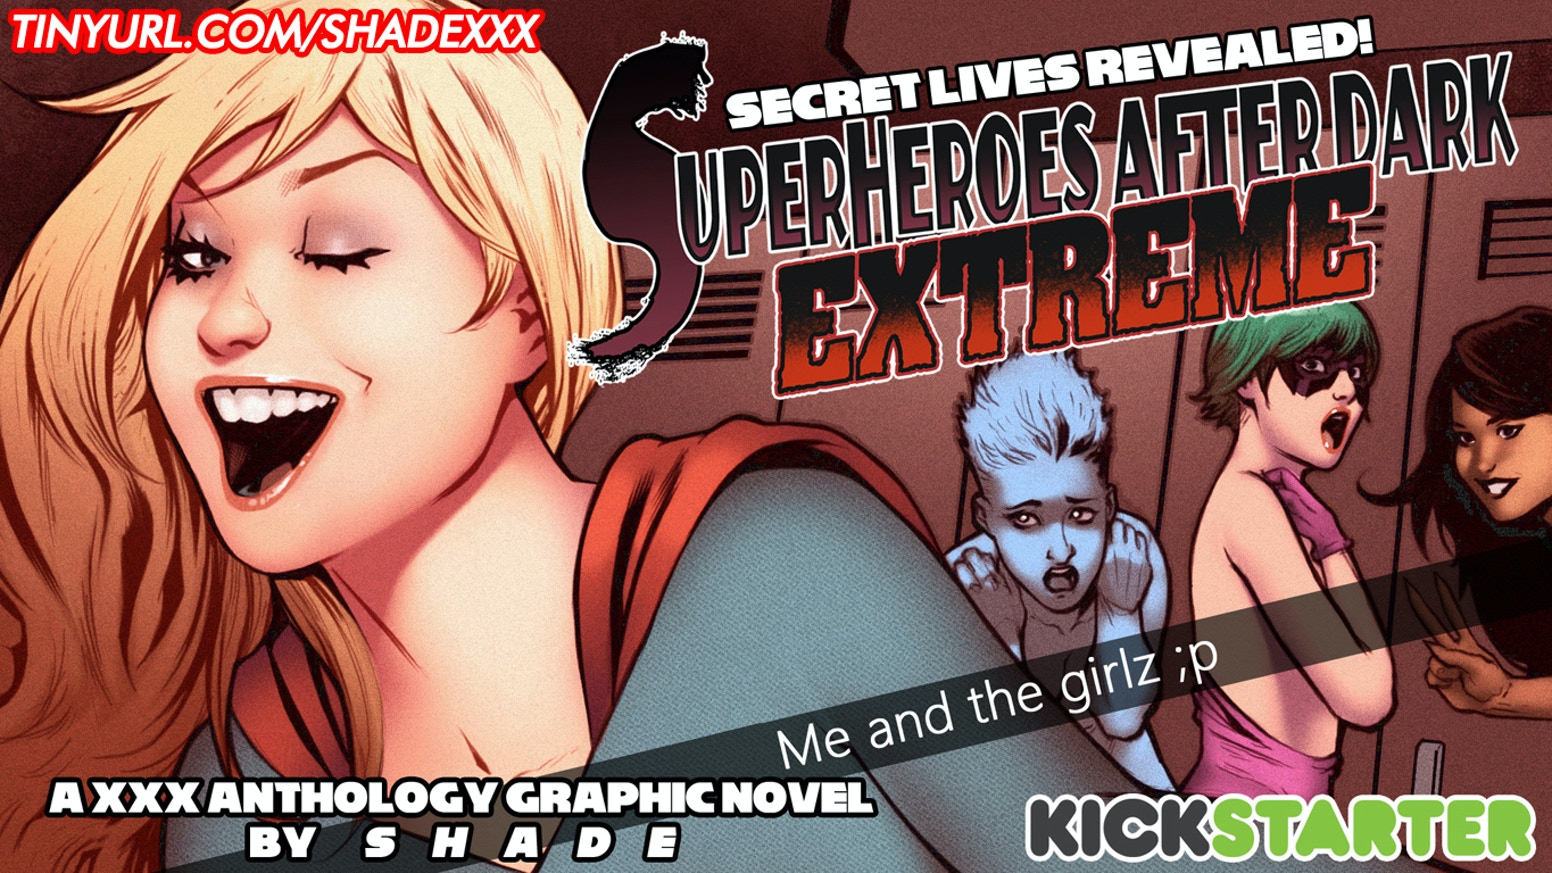 SuperHeroes After Dark (Extreme) is a XXX anthology comic featuring some of the most popular heroes and heroines!